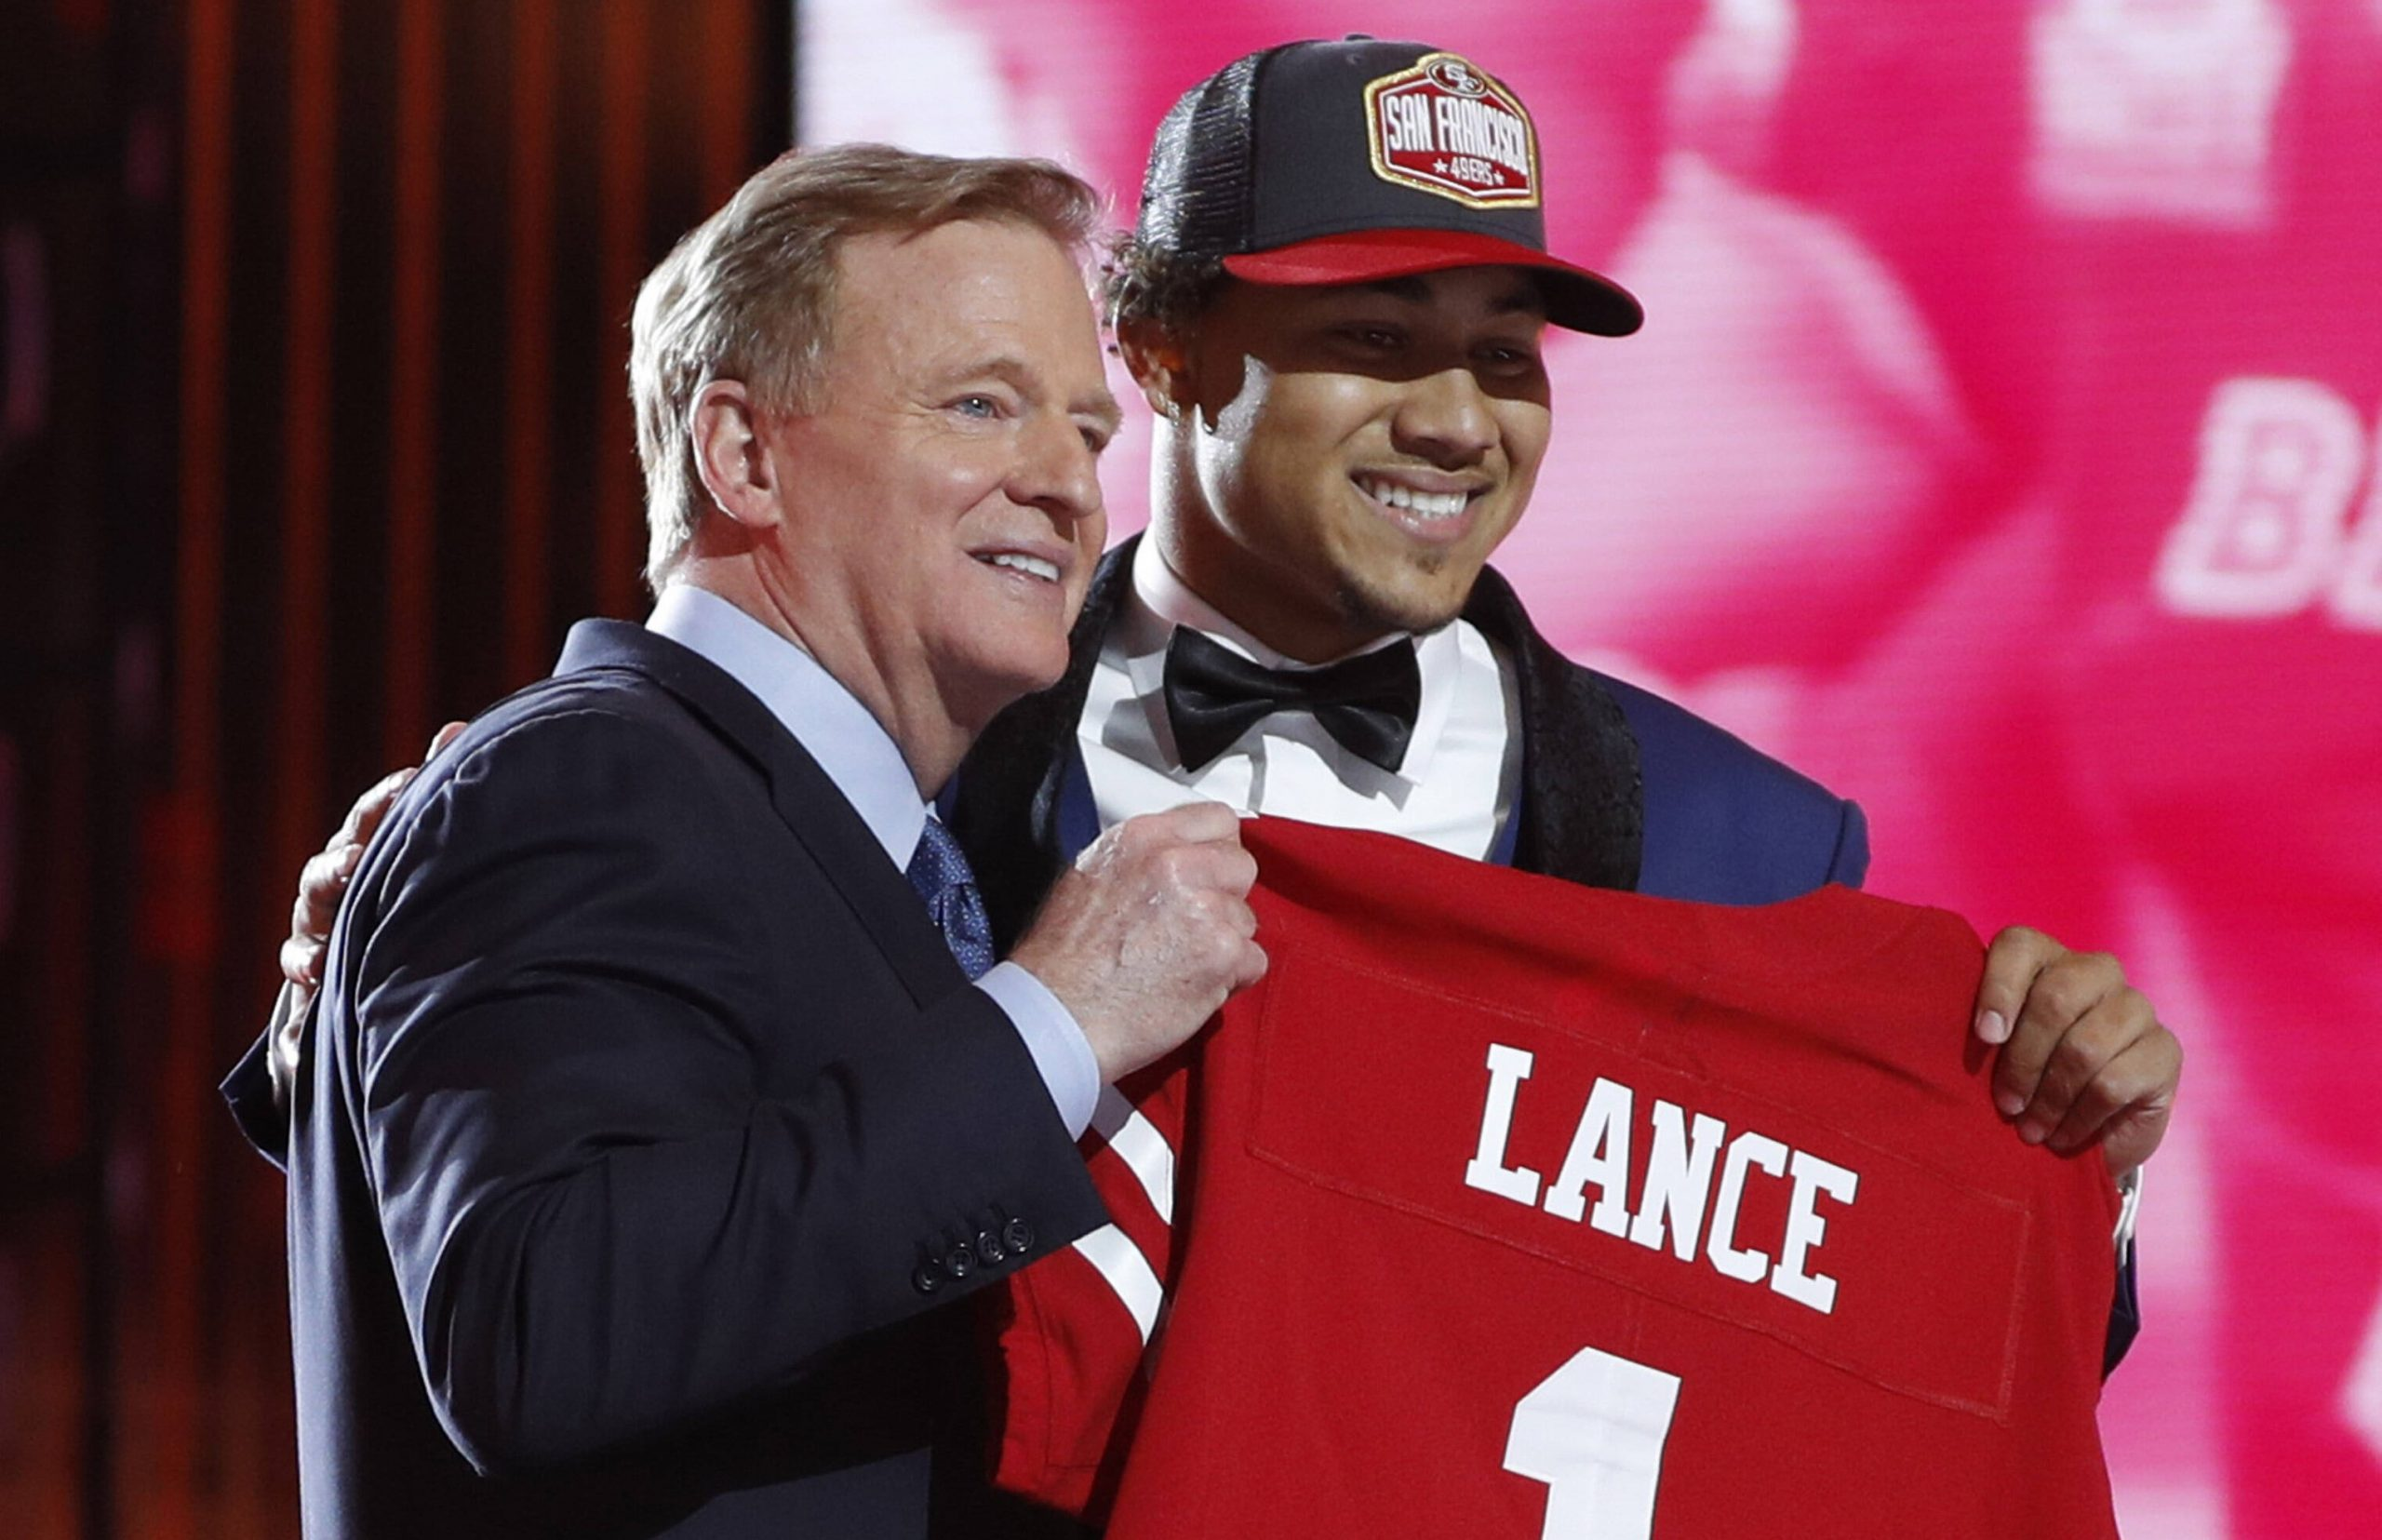 NFL, American Football Herren, USA Commissioner Roger Goodell poses for a photo with Trey Lance after he was selected b